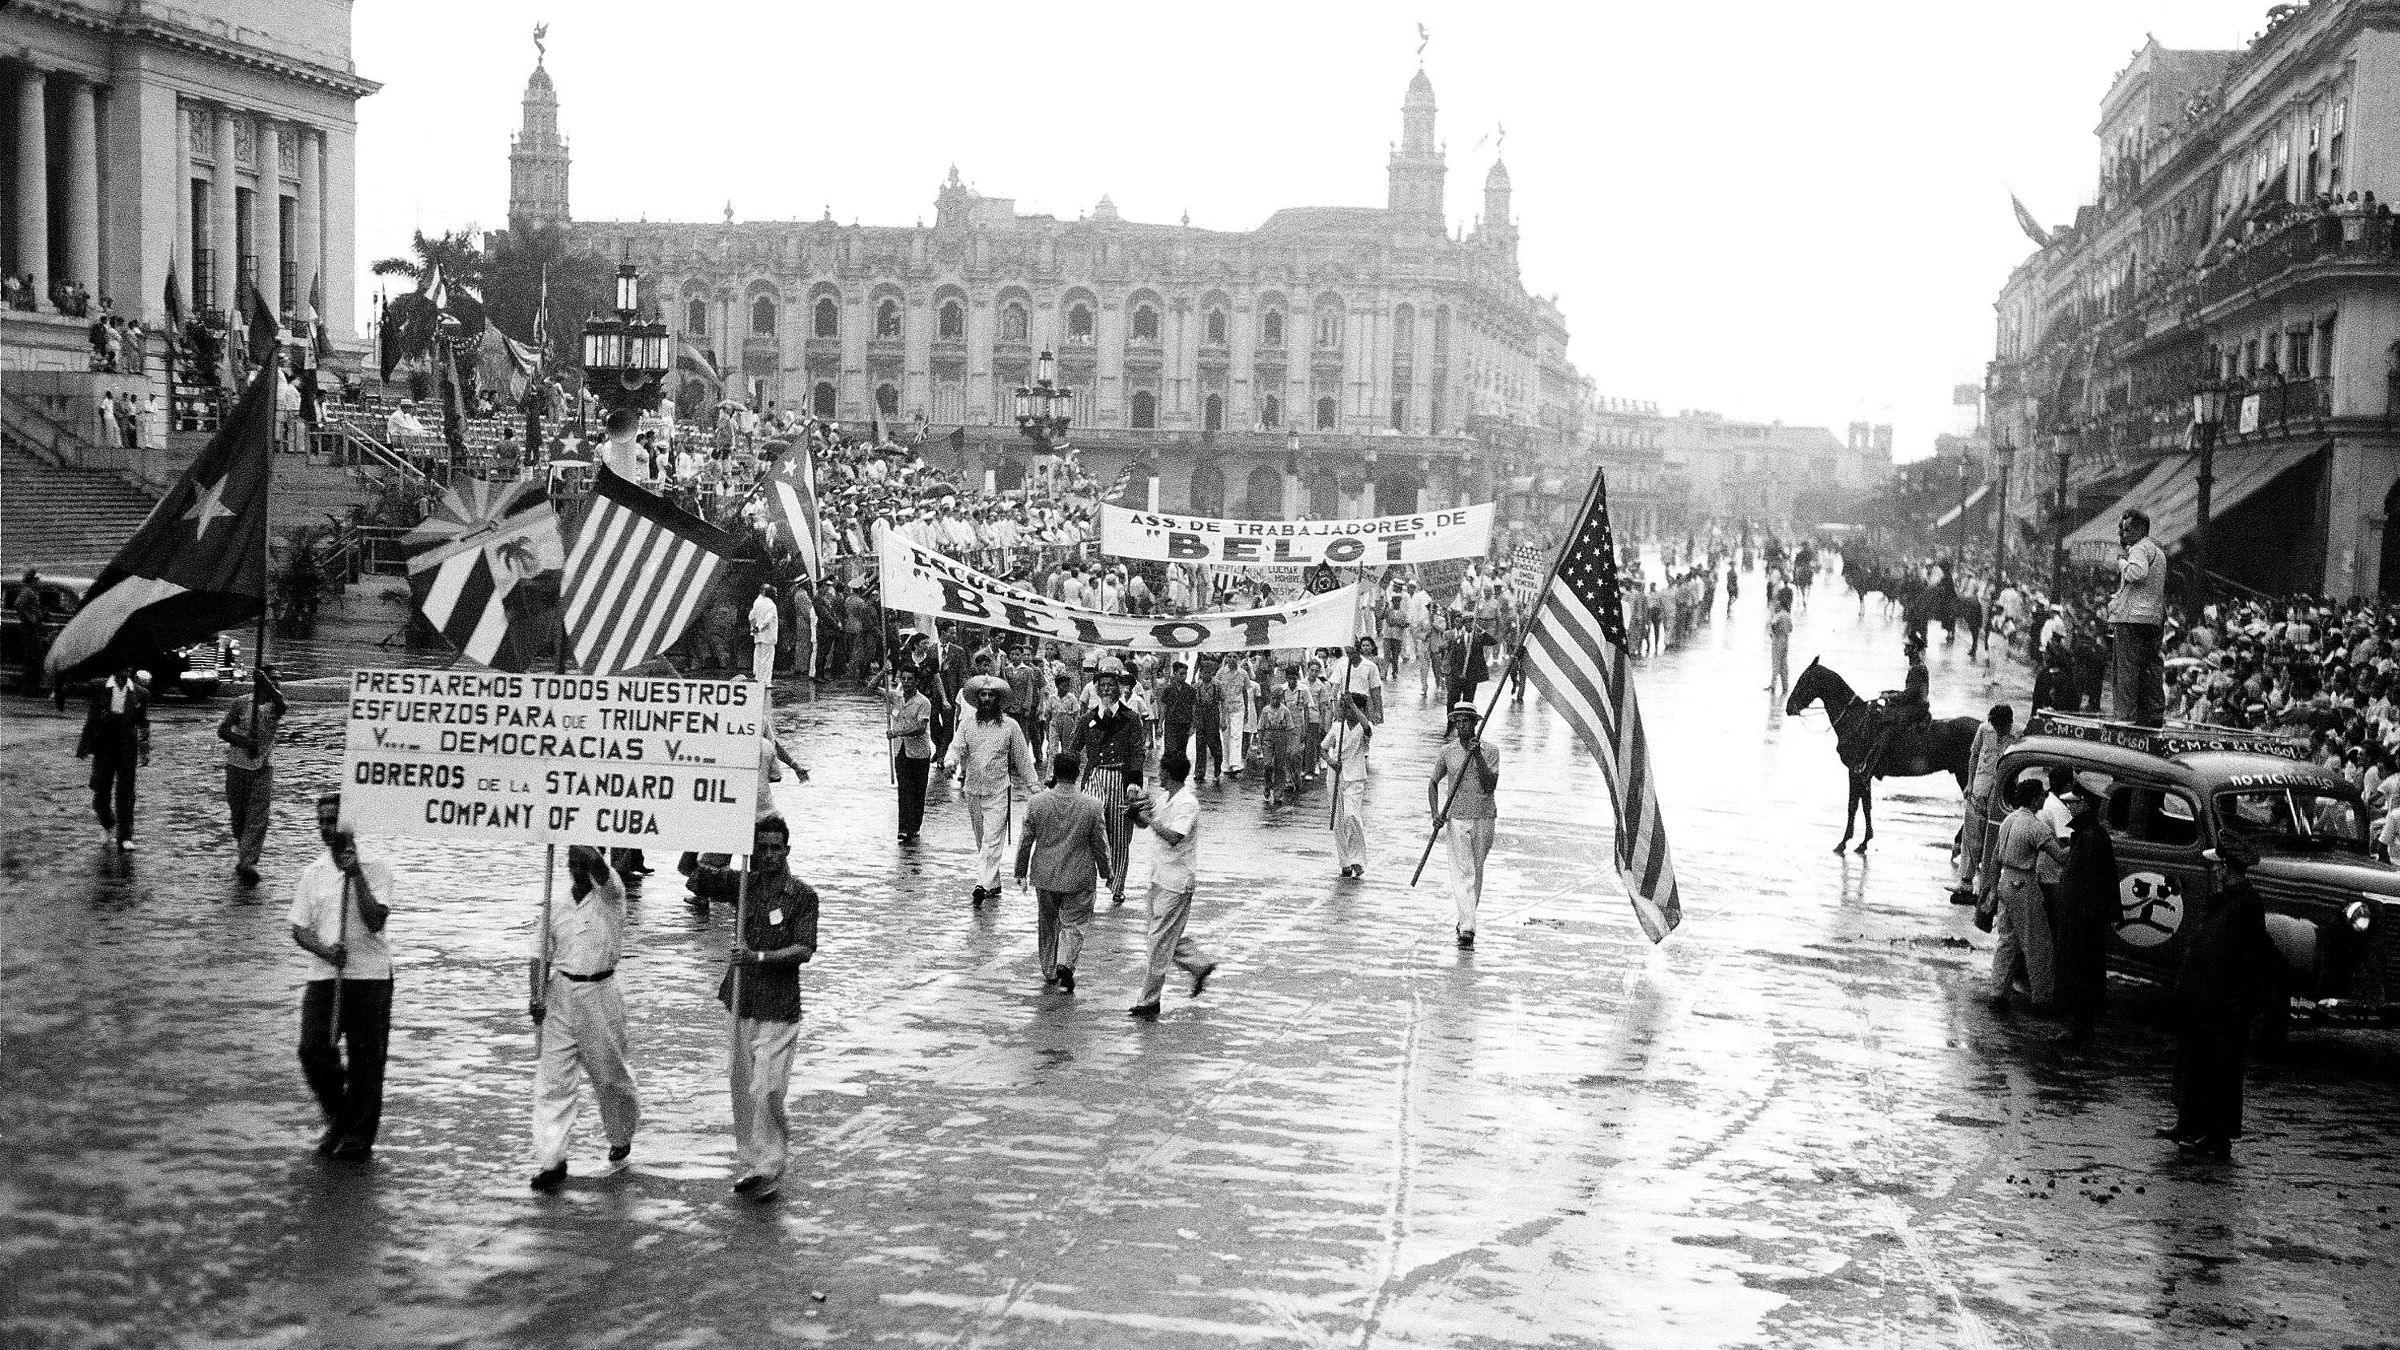 Cuban's parade before the American Ambassador Mr. Spruille Braden and President Fulgencio Batisto in a commemoration of the U.S. Fourth of July, July 4, 1942.